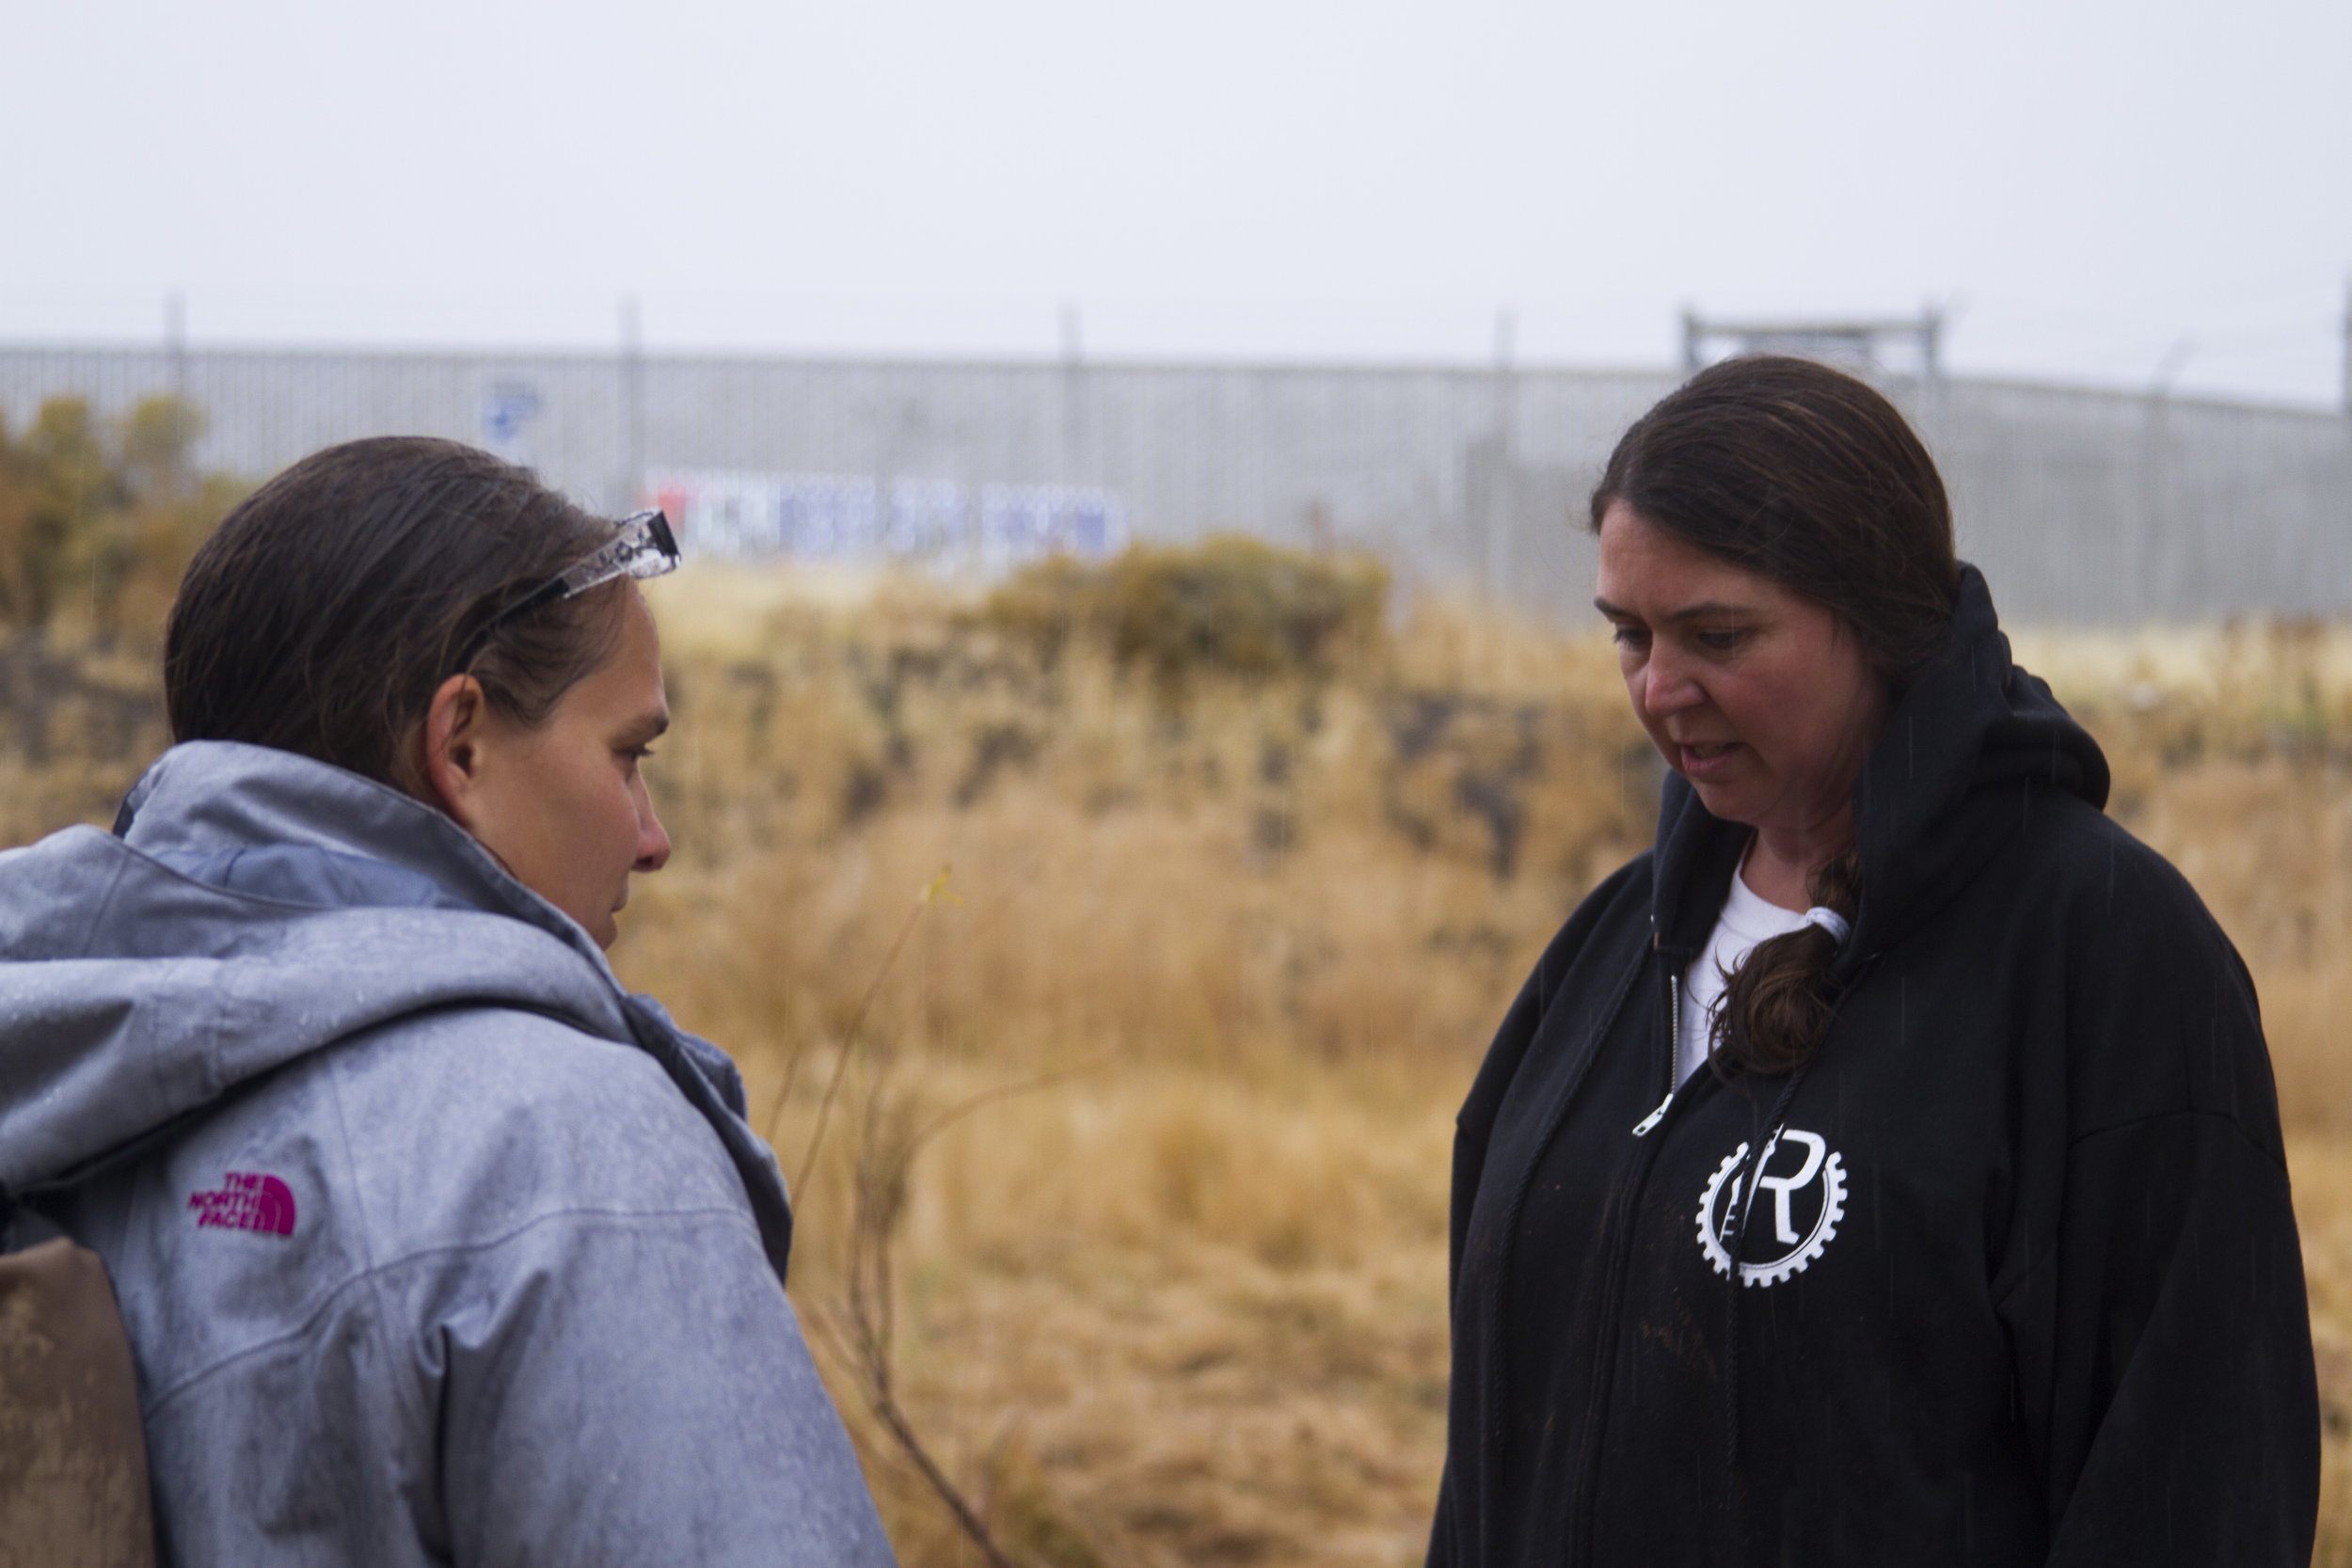 Katie Colling (left) and Jennifer Cassady (right), both with the local Reno group known by its acronym RISE, discuss the homeless encampment area previously protected by brush.